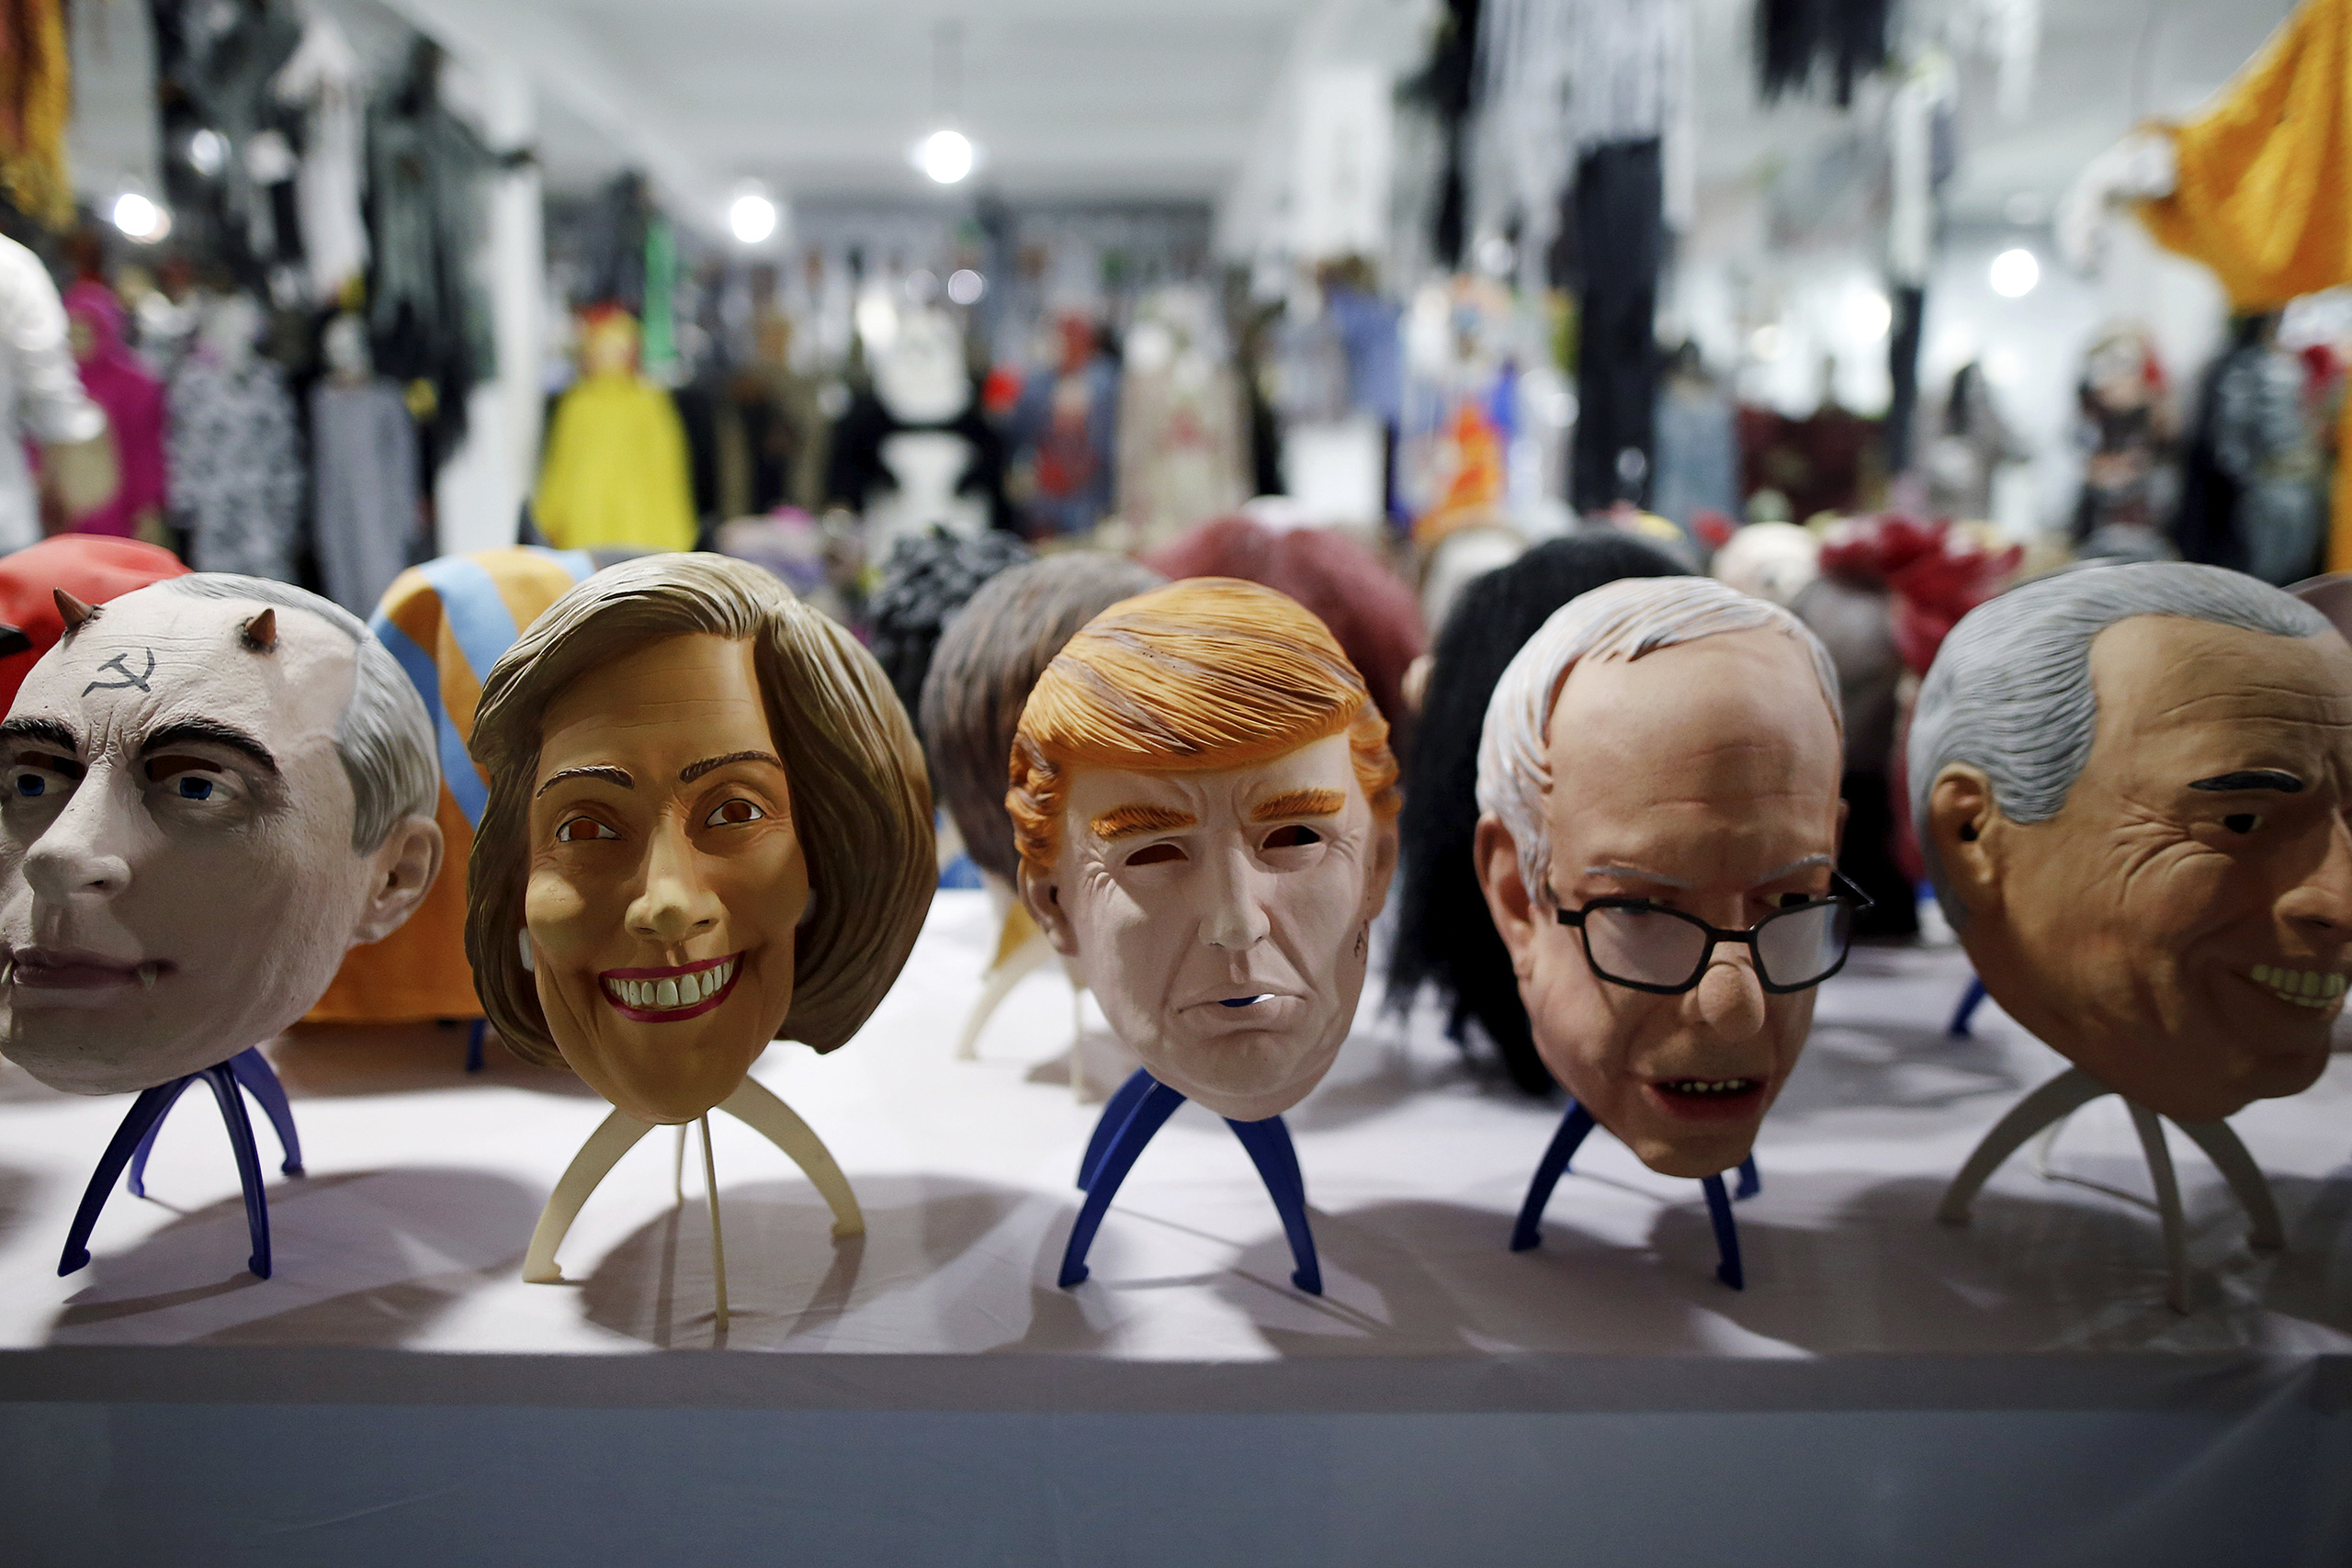 Masks of different politicians are displayed in the showroom of Jinhua Partytime Latex Art and Crafts Factory in Jinhua, Zhejiang Province, China, May 25, 2016.